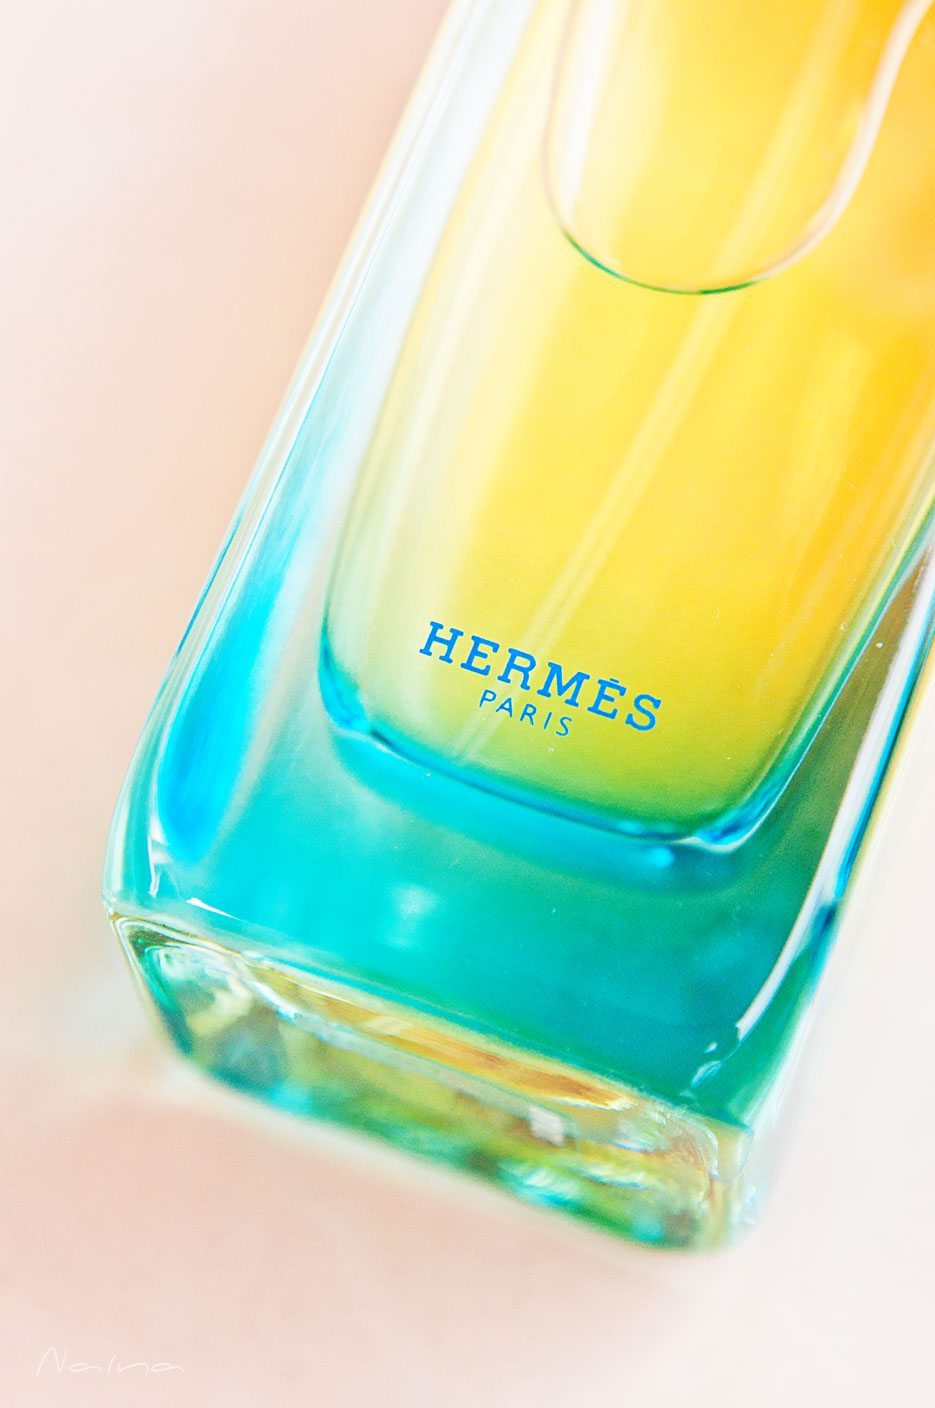 Color-Hermes-Perfume-by-naina-06